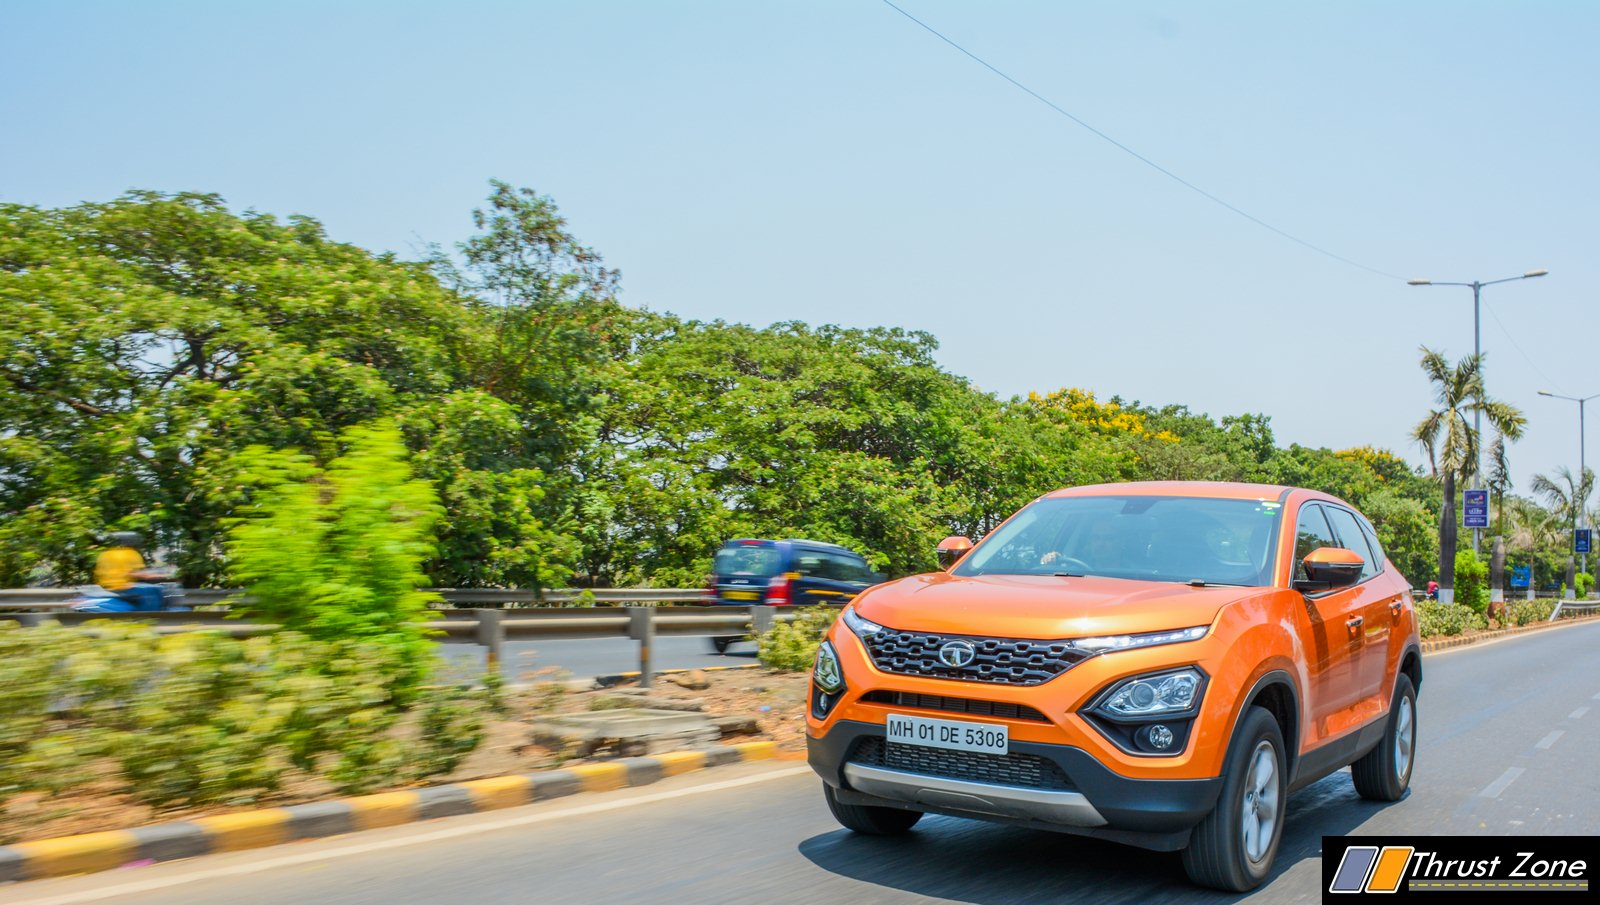 https://www.thrustzone.com/wp-content/uploads/2019/06/2019-Tata-harrier-diesel-manual-review-19.jpg